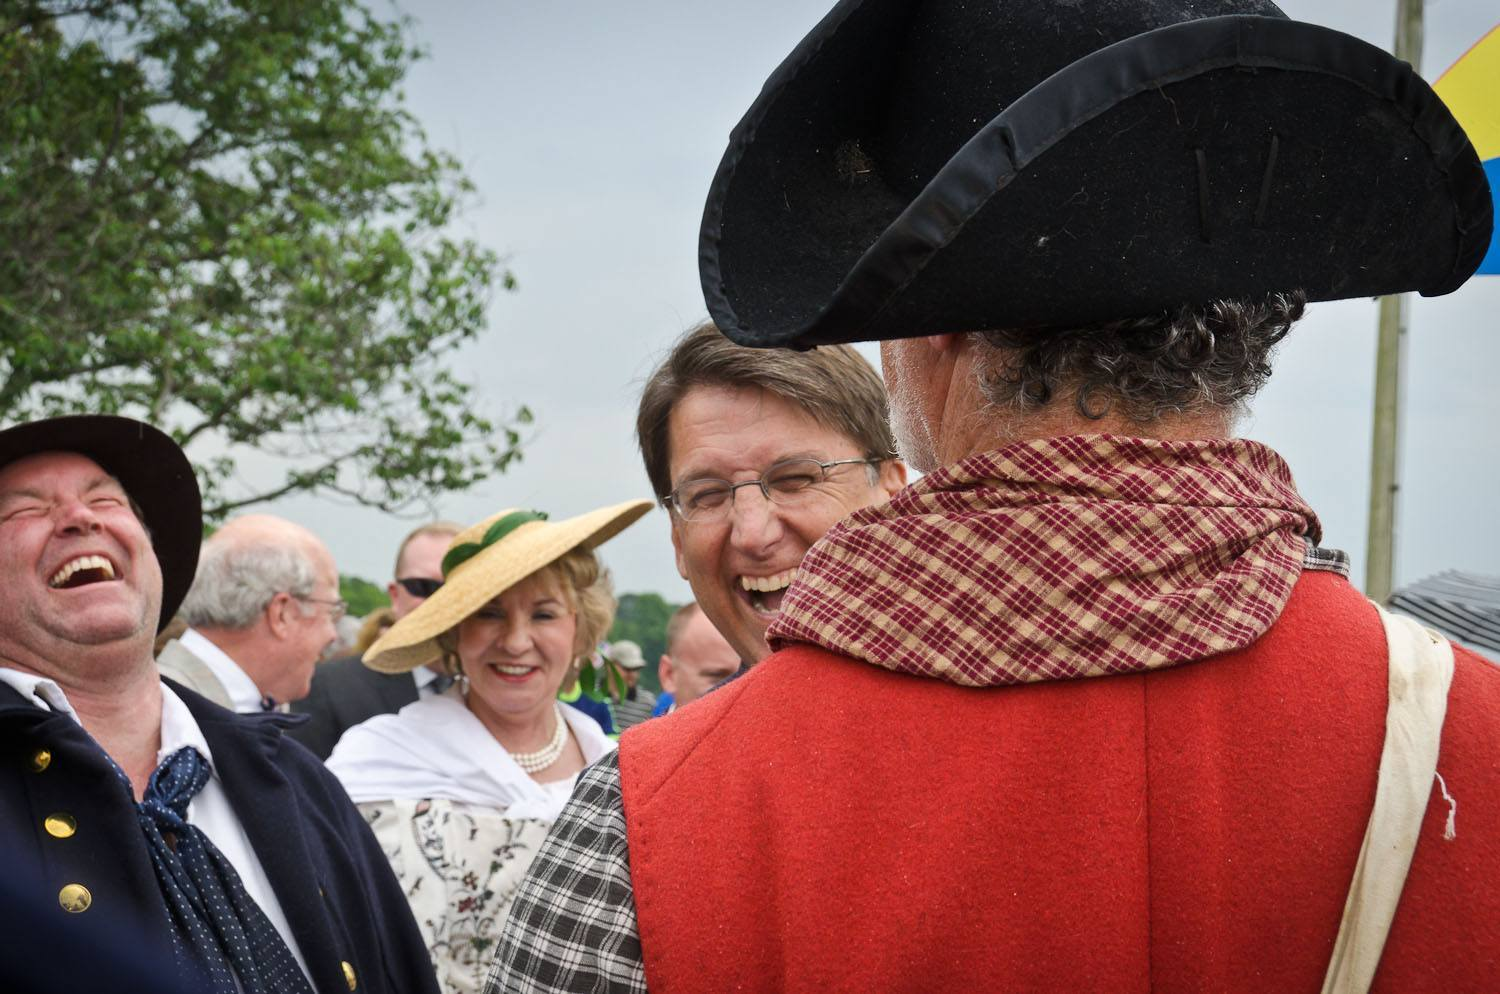 Gov McCrory shares a laugh with attendees in colonial garb.